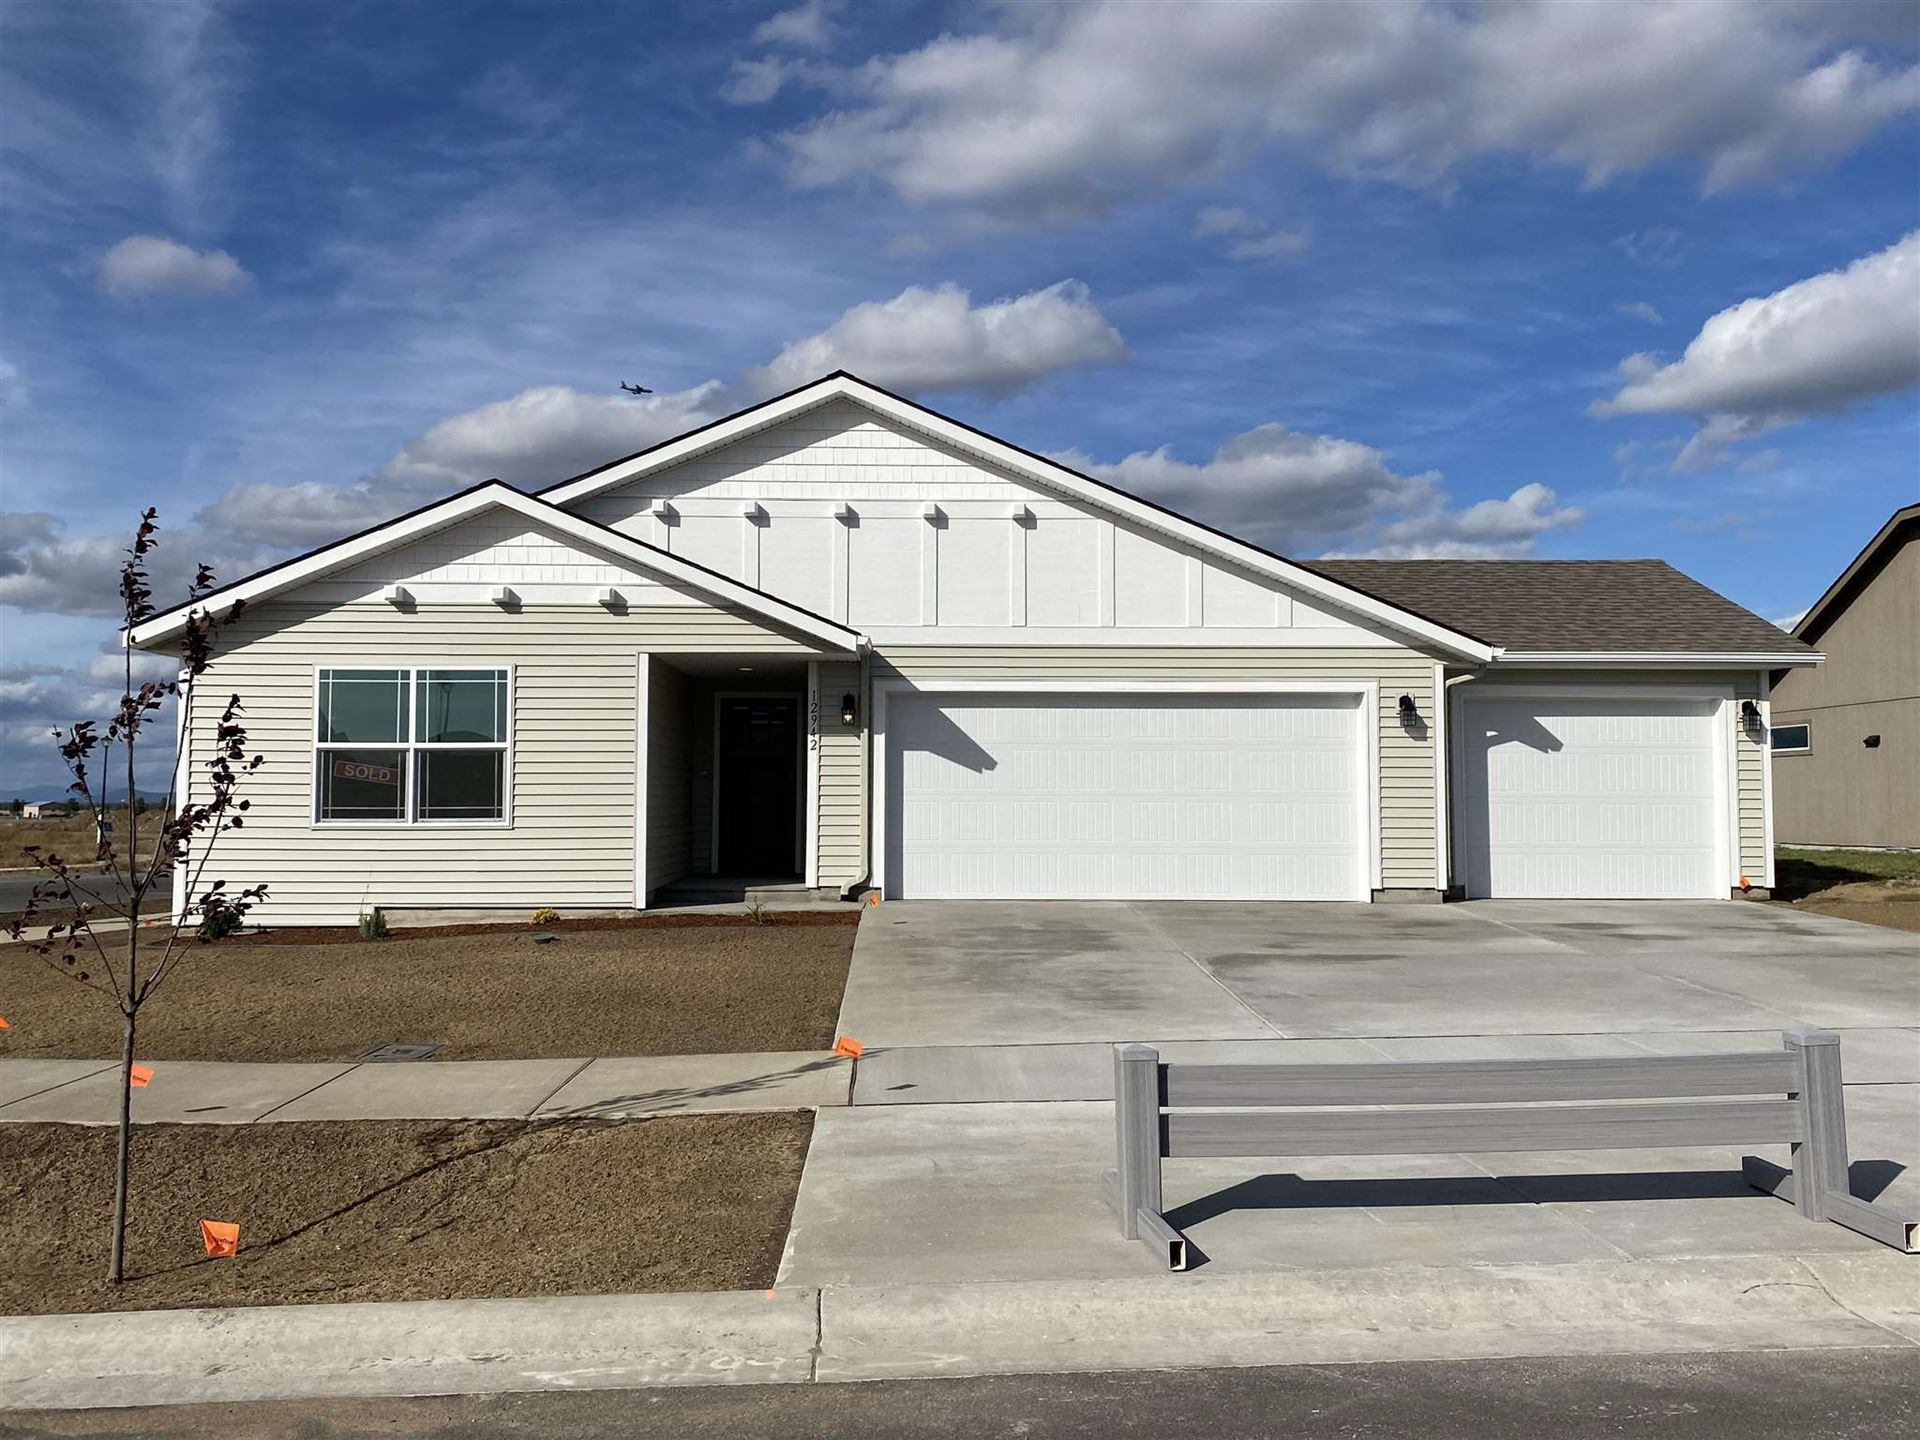 12942 W Pacific Ave, Airway Heights, WA 99001 - #: 202117626